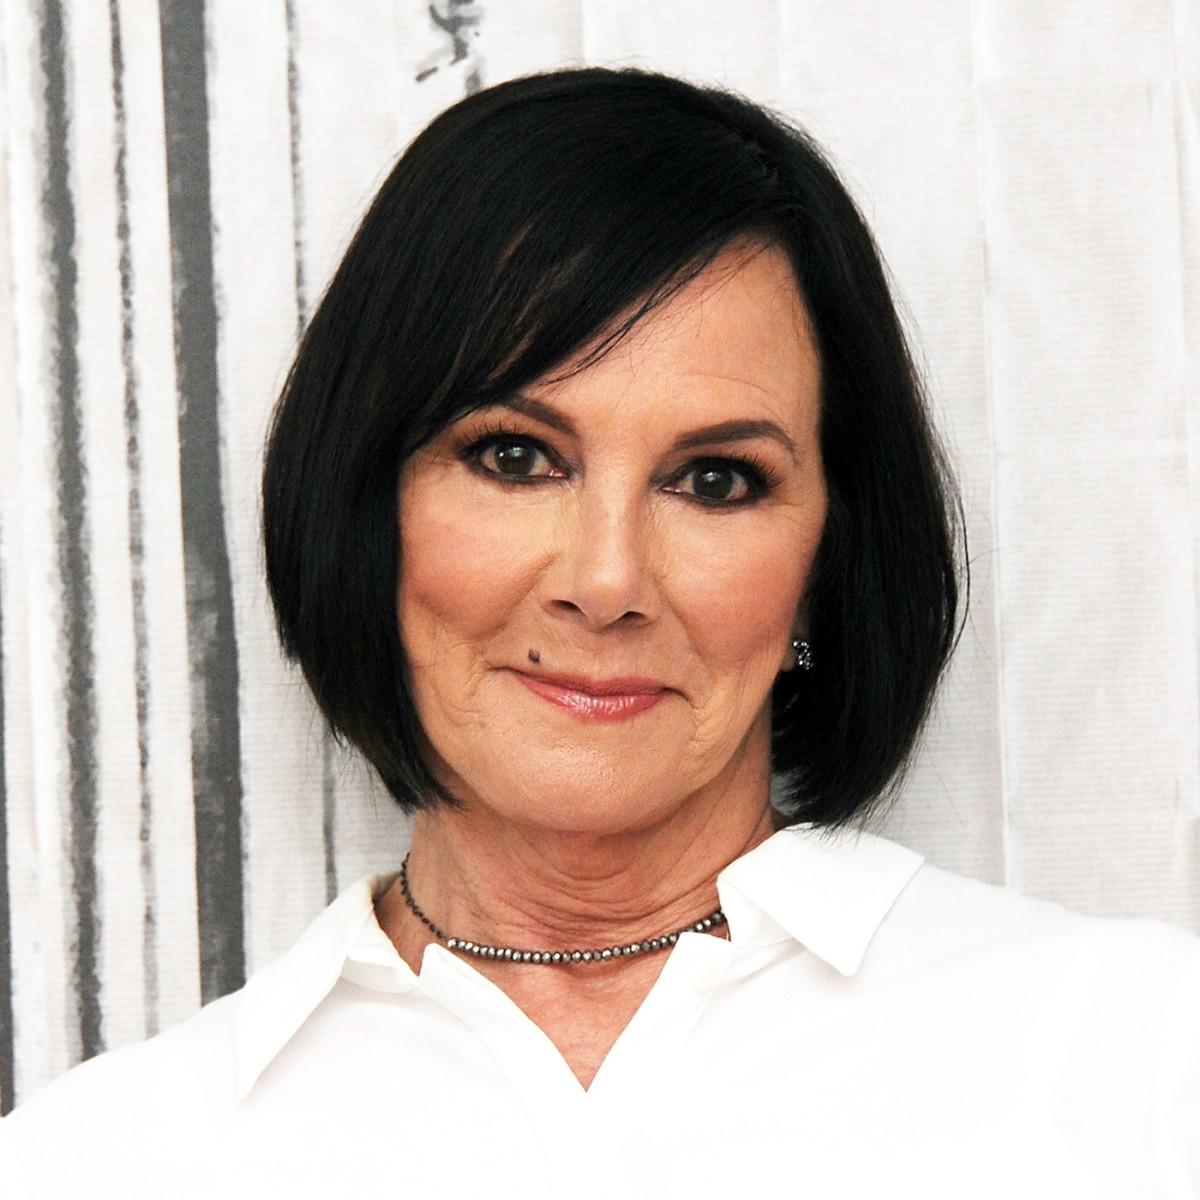 Marcia Clark photo via Getty Images